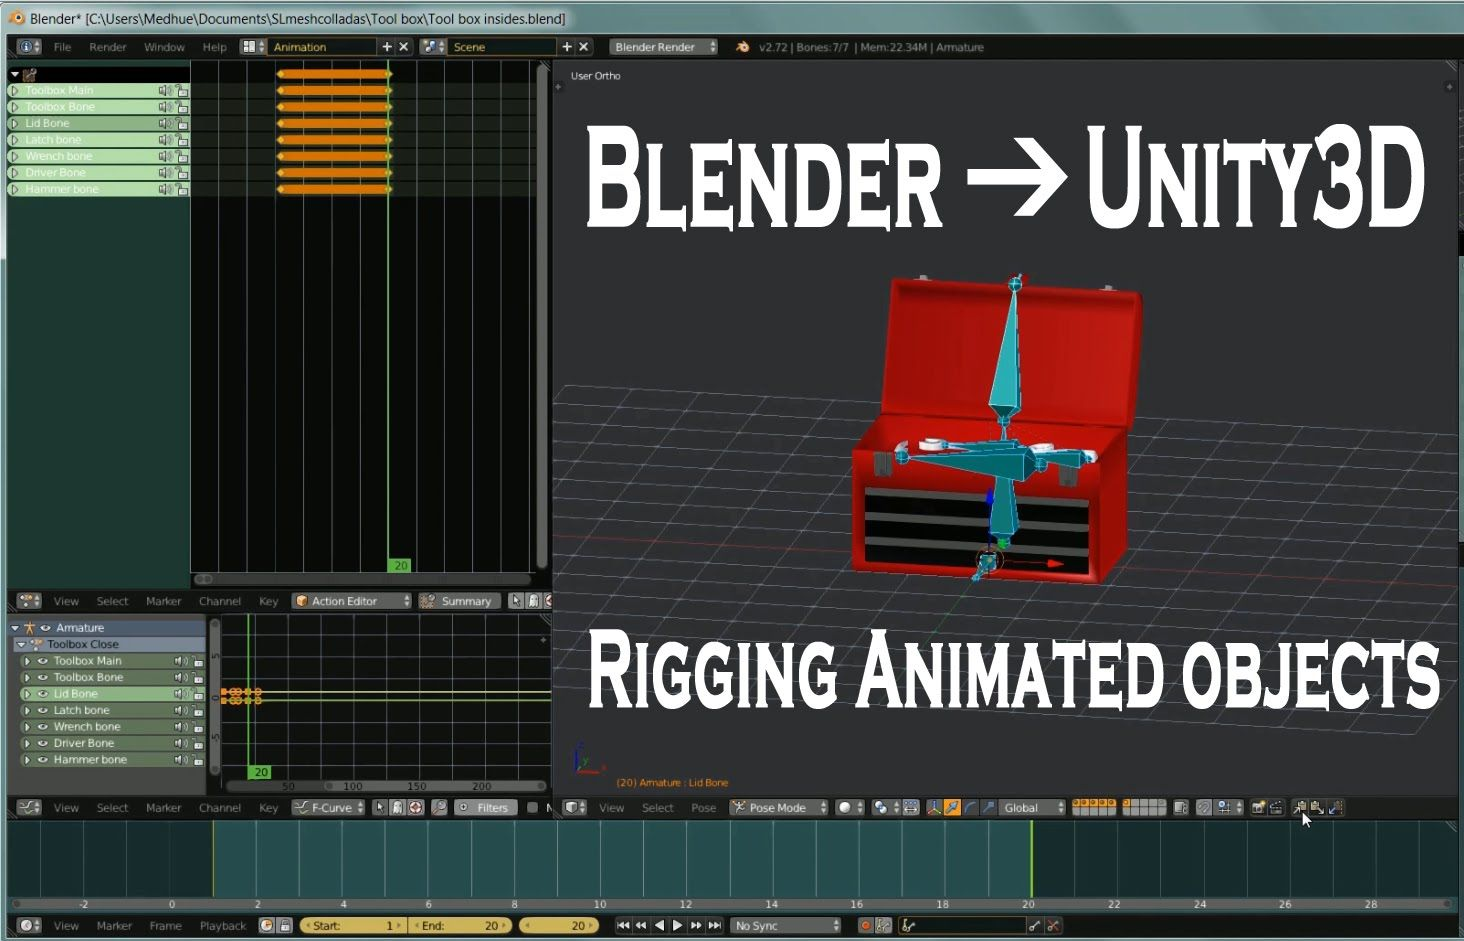 Blender to Unity3D Rigging Animated Objects for Games